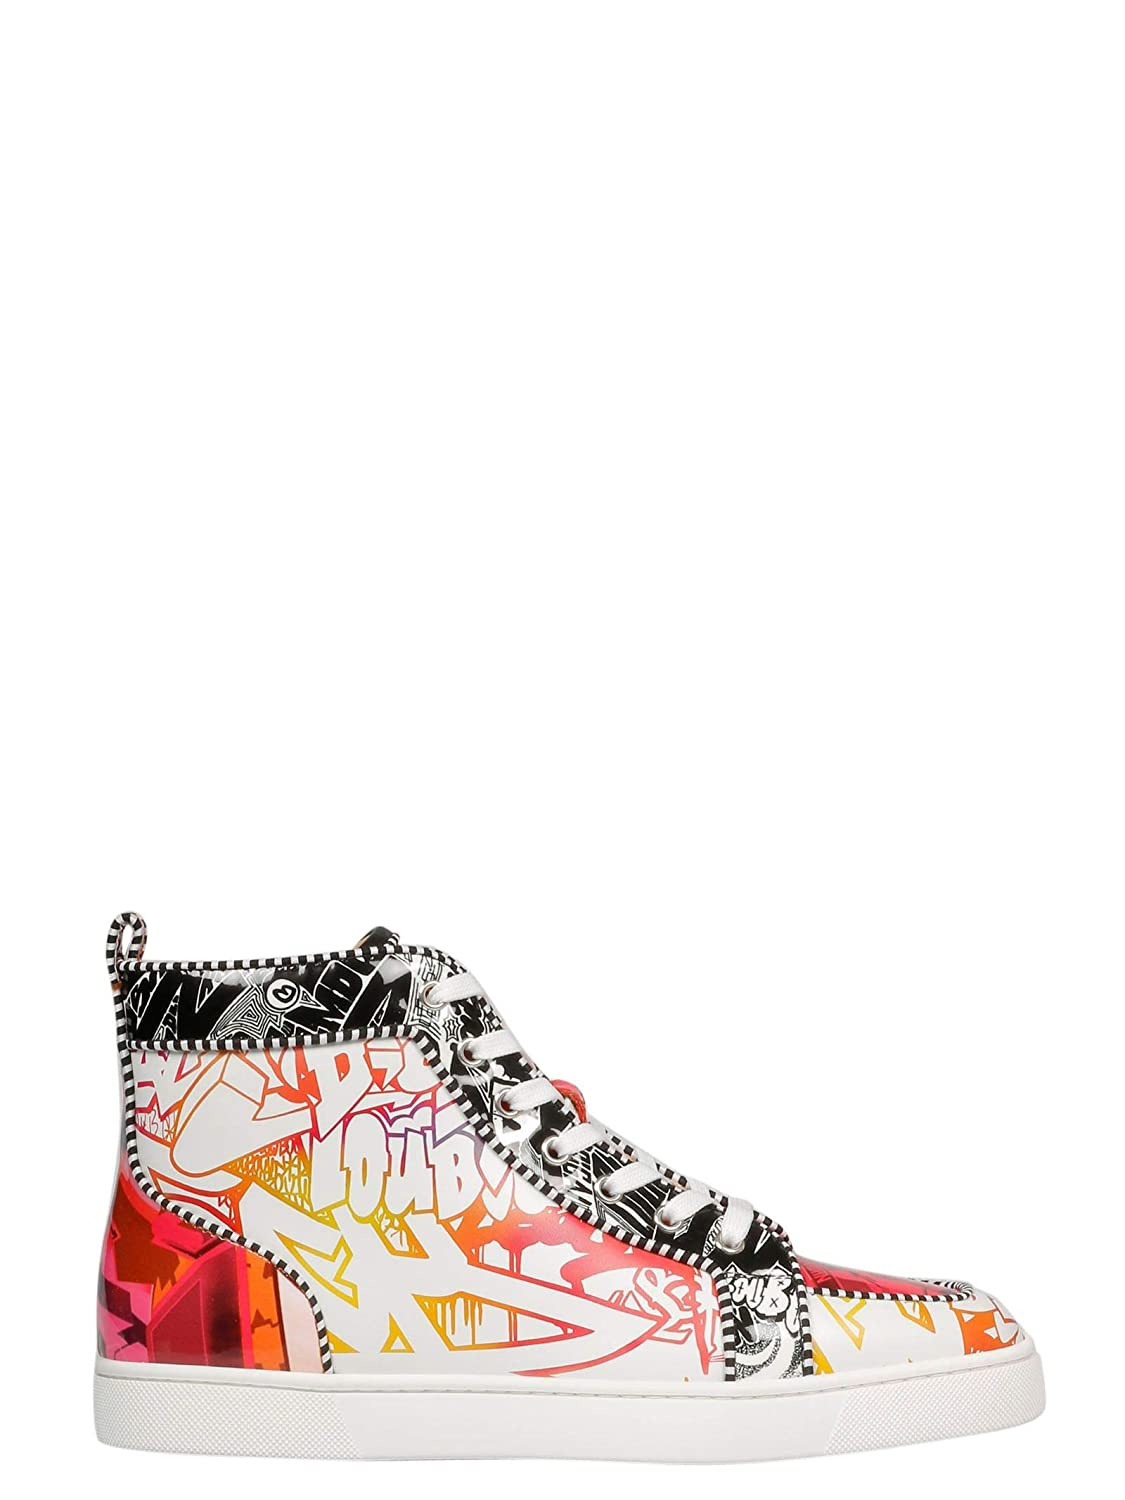 official photos 6f77d d1d86 Amazon.com | Christian Louboutin Men's 1190262CMA3 ...